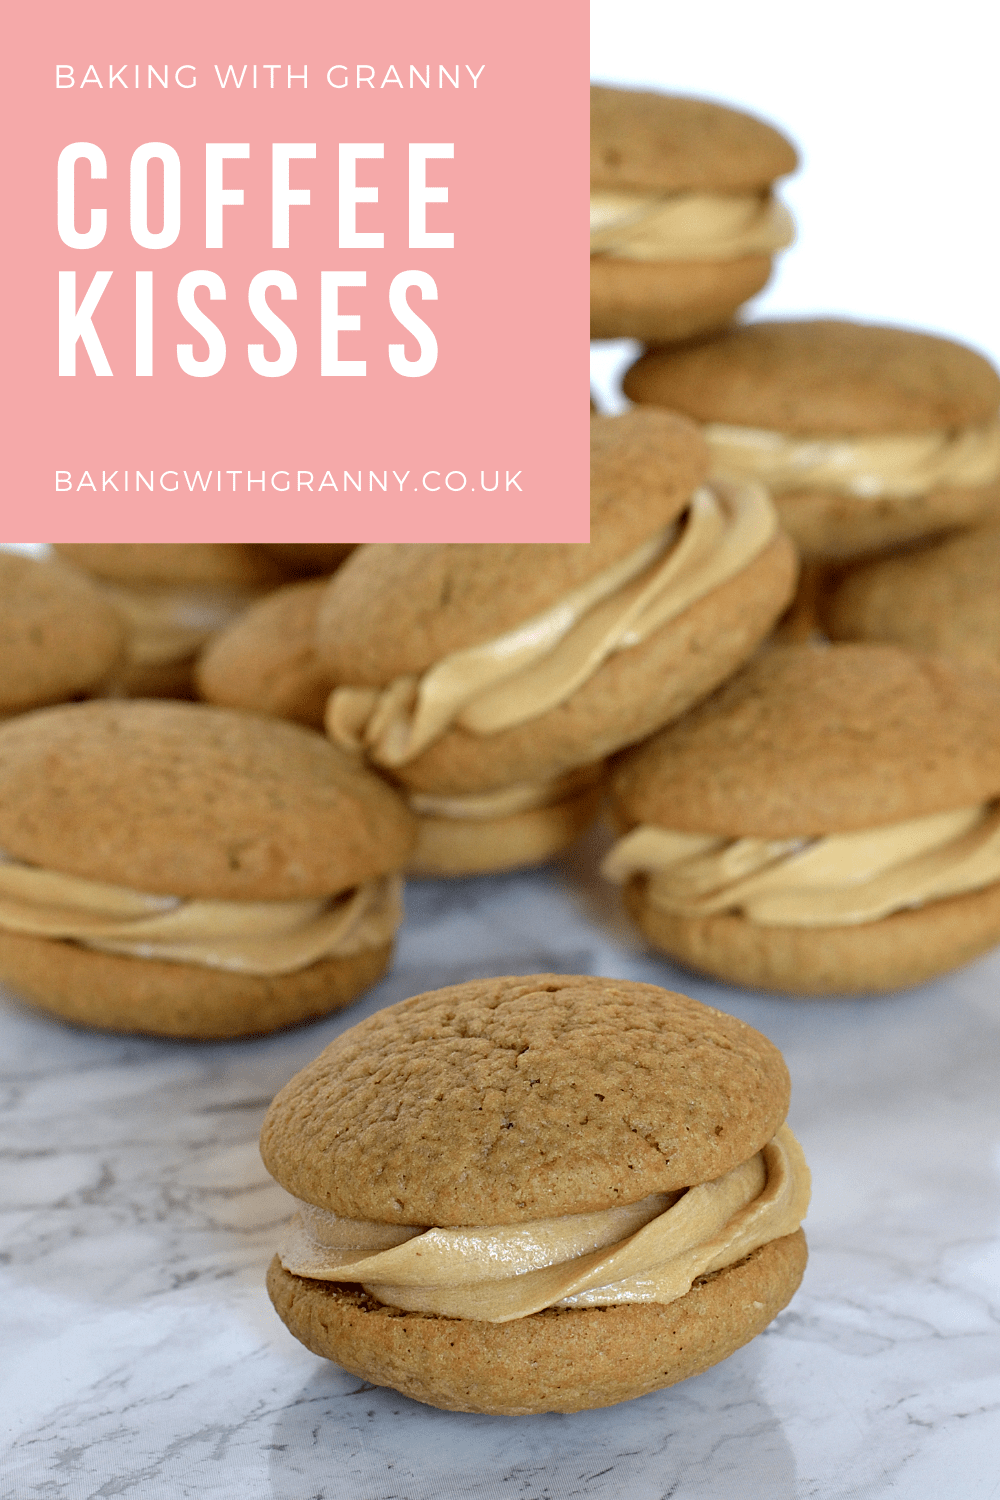 Coffee Kisses biscuit cookie recipe from Baking with Granny.